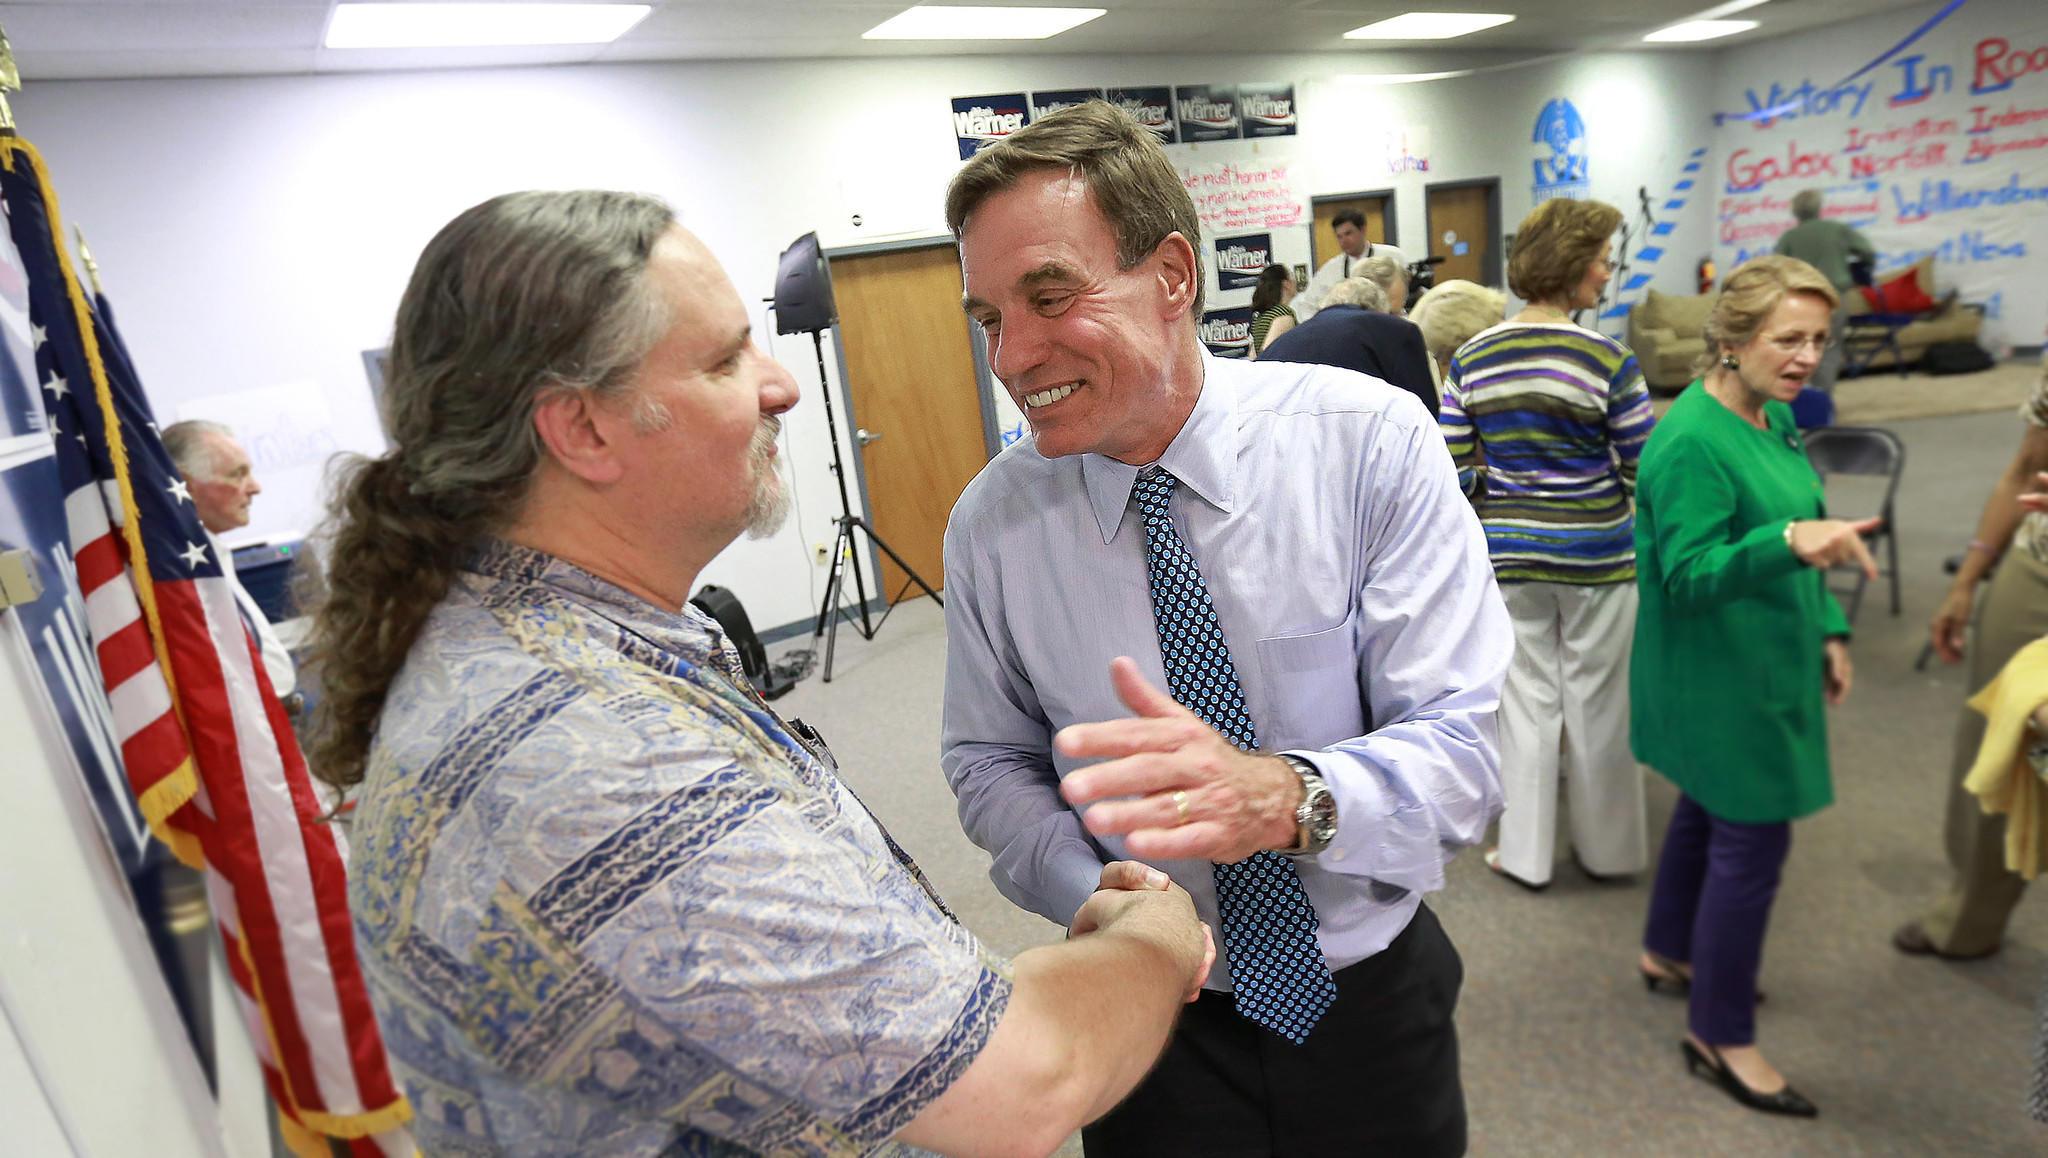 Virginia Senator Mark Warner, right, shakes the hand of Tim Dolan, who has come to meet the senator, who has just opened a campaign office in Hampton.